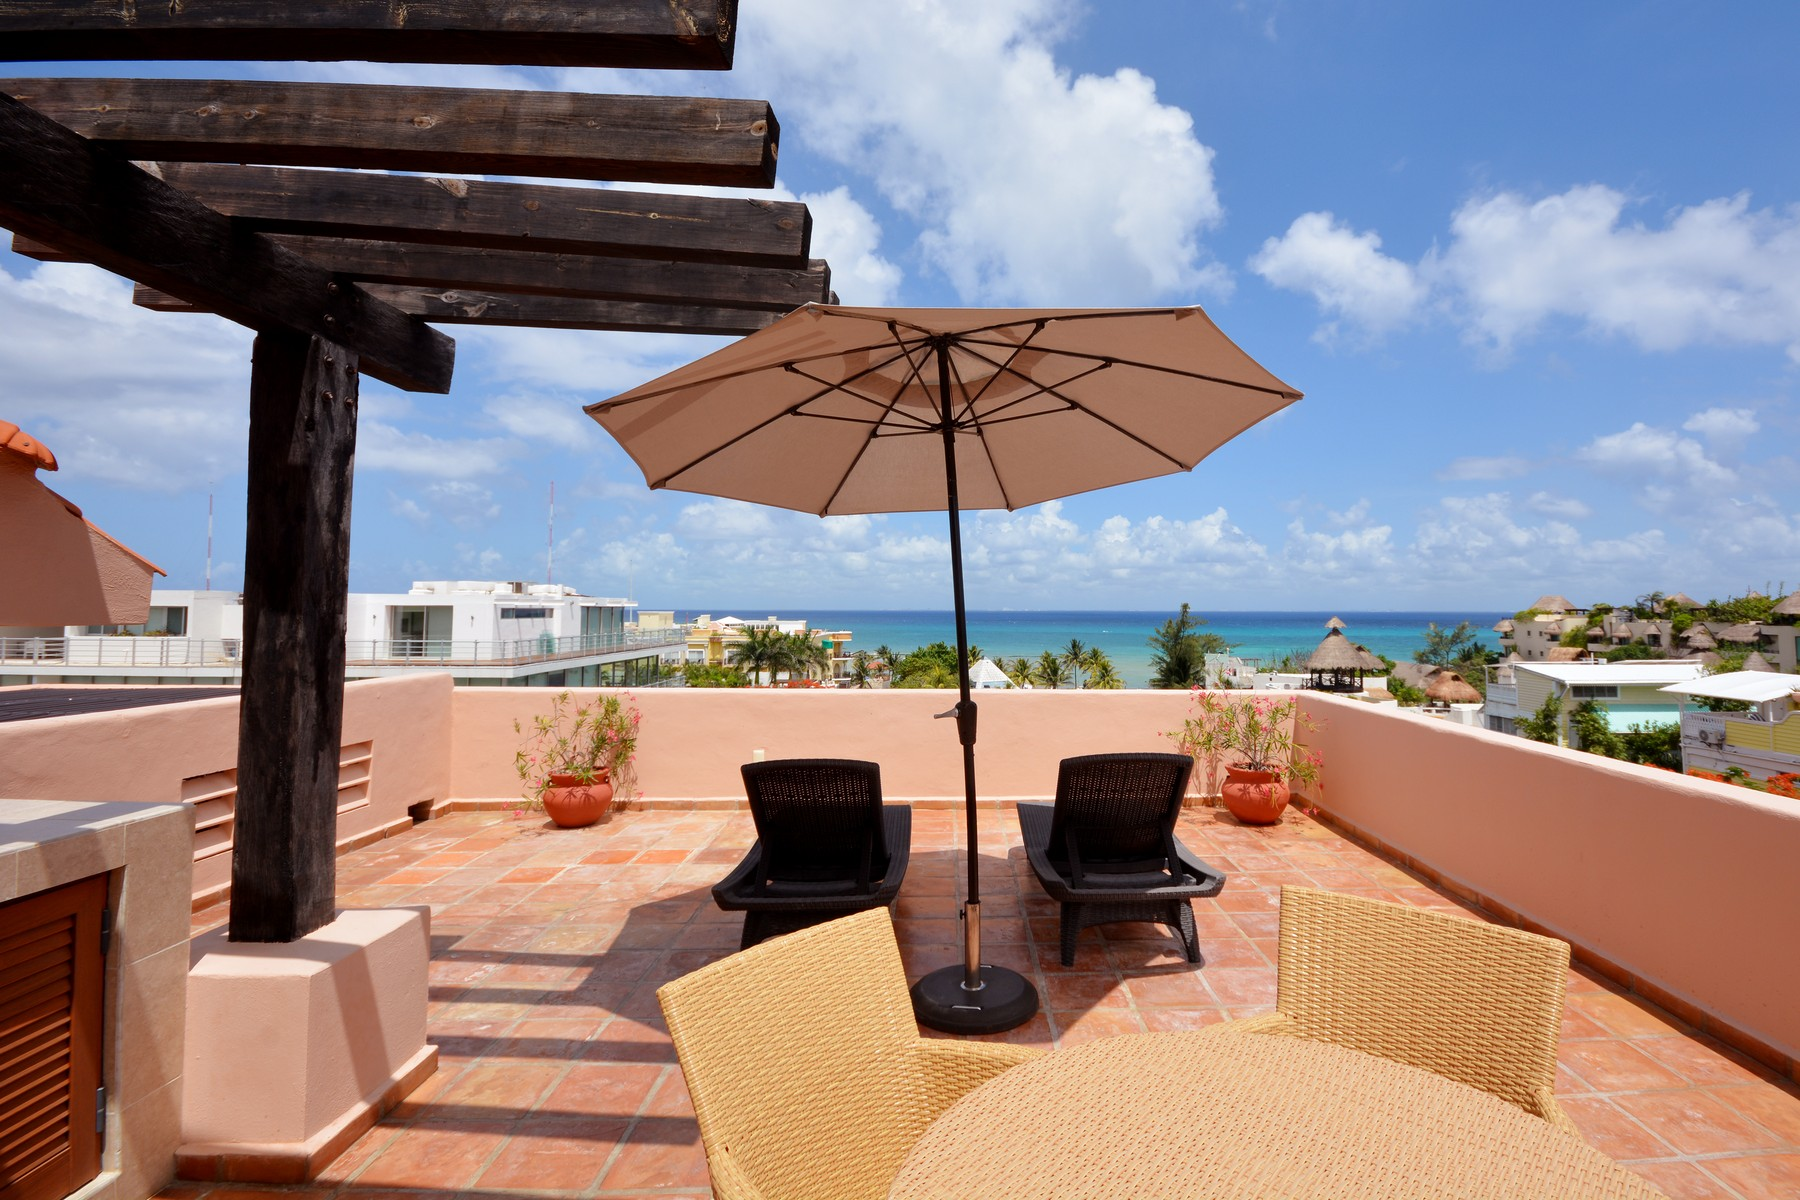 Nhà chung cư vì Bán tại DELUXE PENTHOUSE IN THE BEST LOCATION Deluxe penthouse in the best location Calle 16 Norte Bis entre 5a Ave y 1a Ave Playa Del Carmen, Quintana Roo, 77710 Mexico